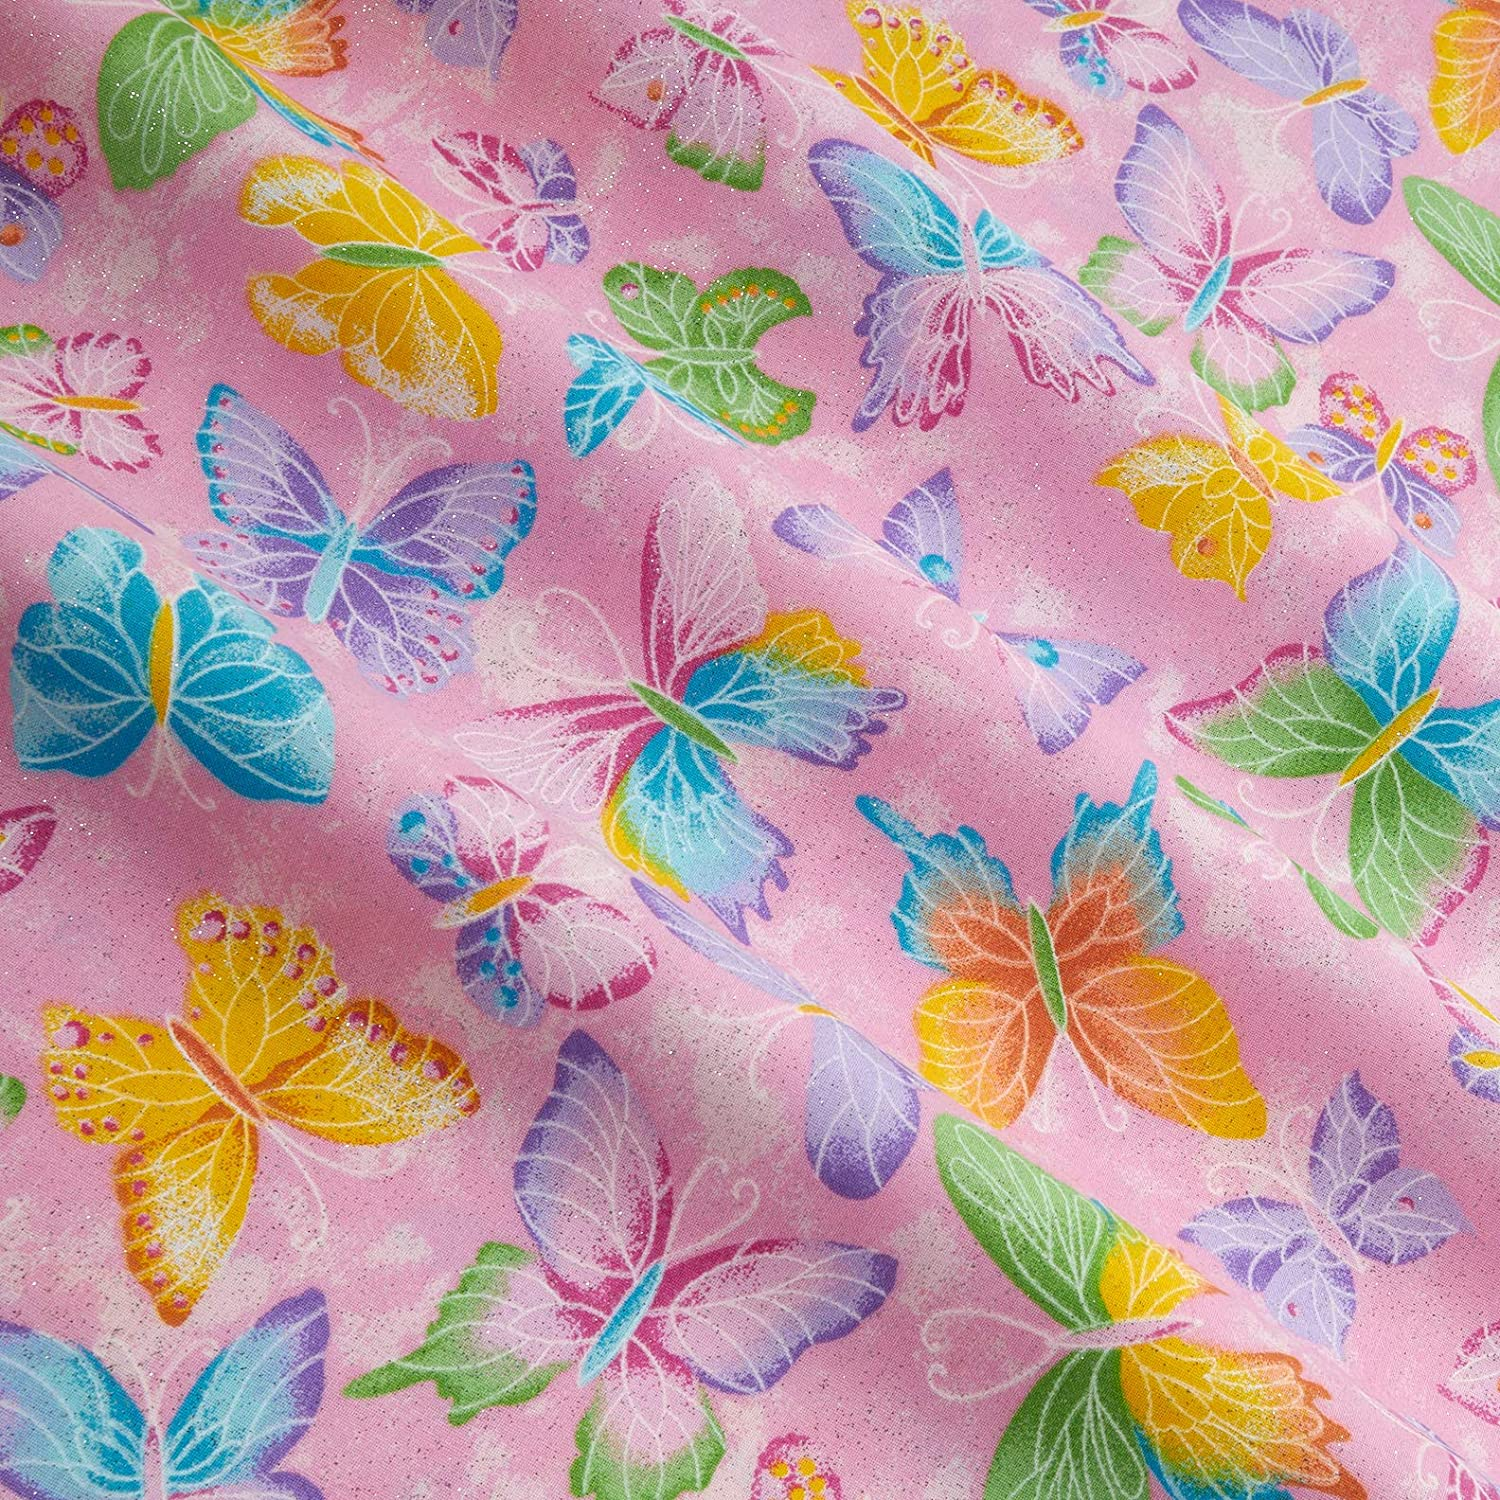 Butterfly Insect Fabric Pink Silver Glitter Fabric Traditions 100/% Cotton Fabric  Novelty Fabric